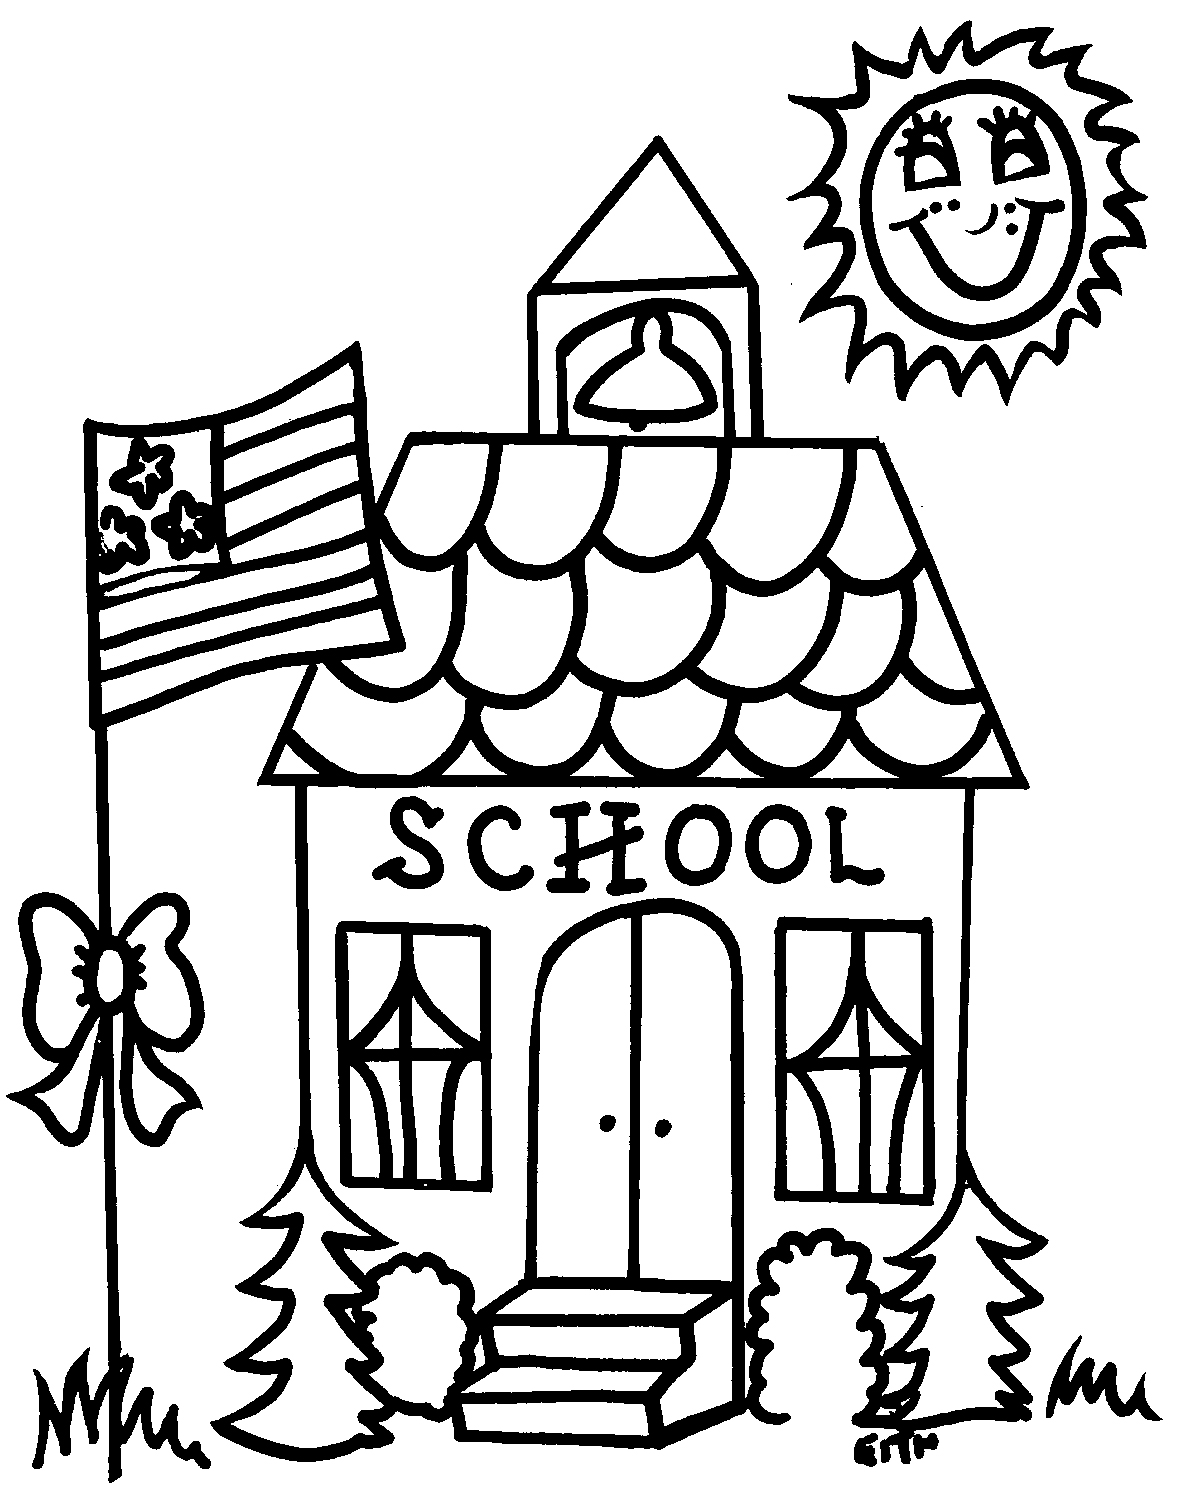 school room coloring pages - photo#6